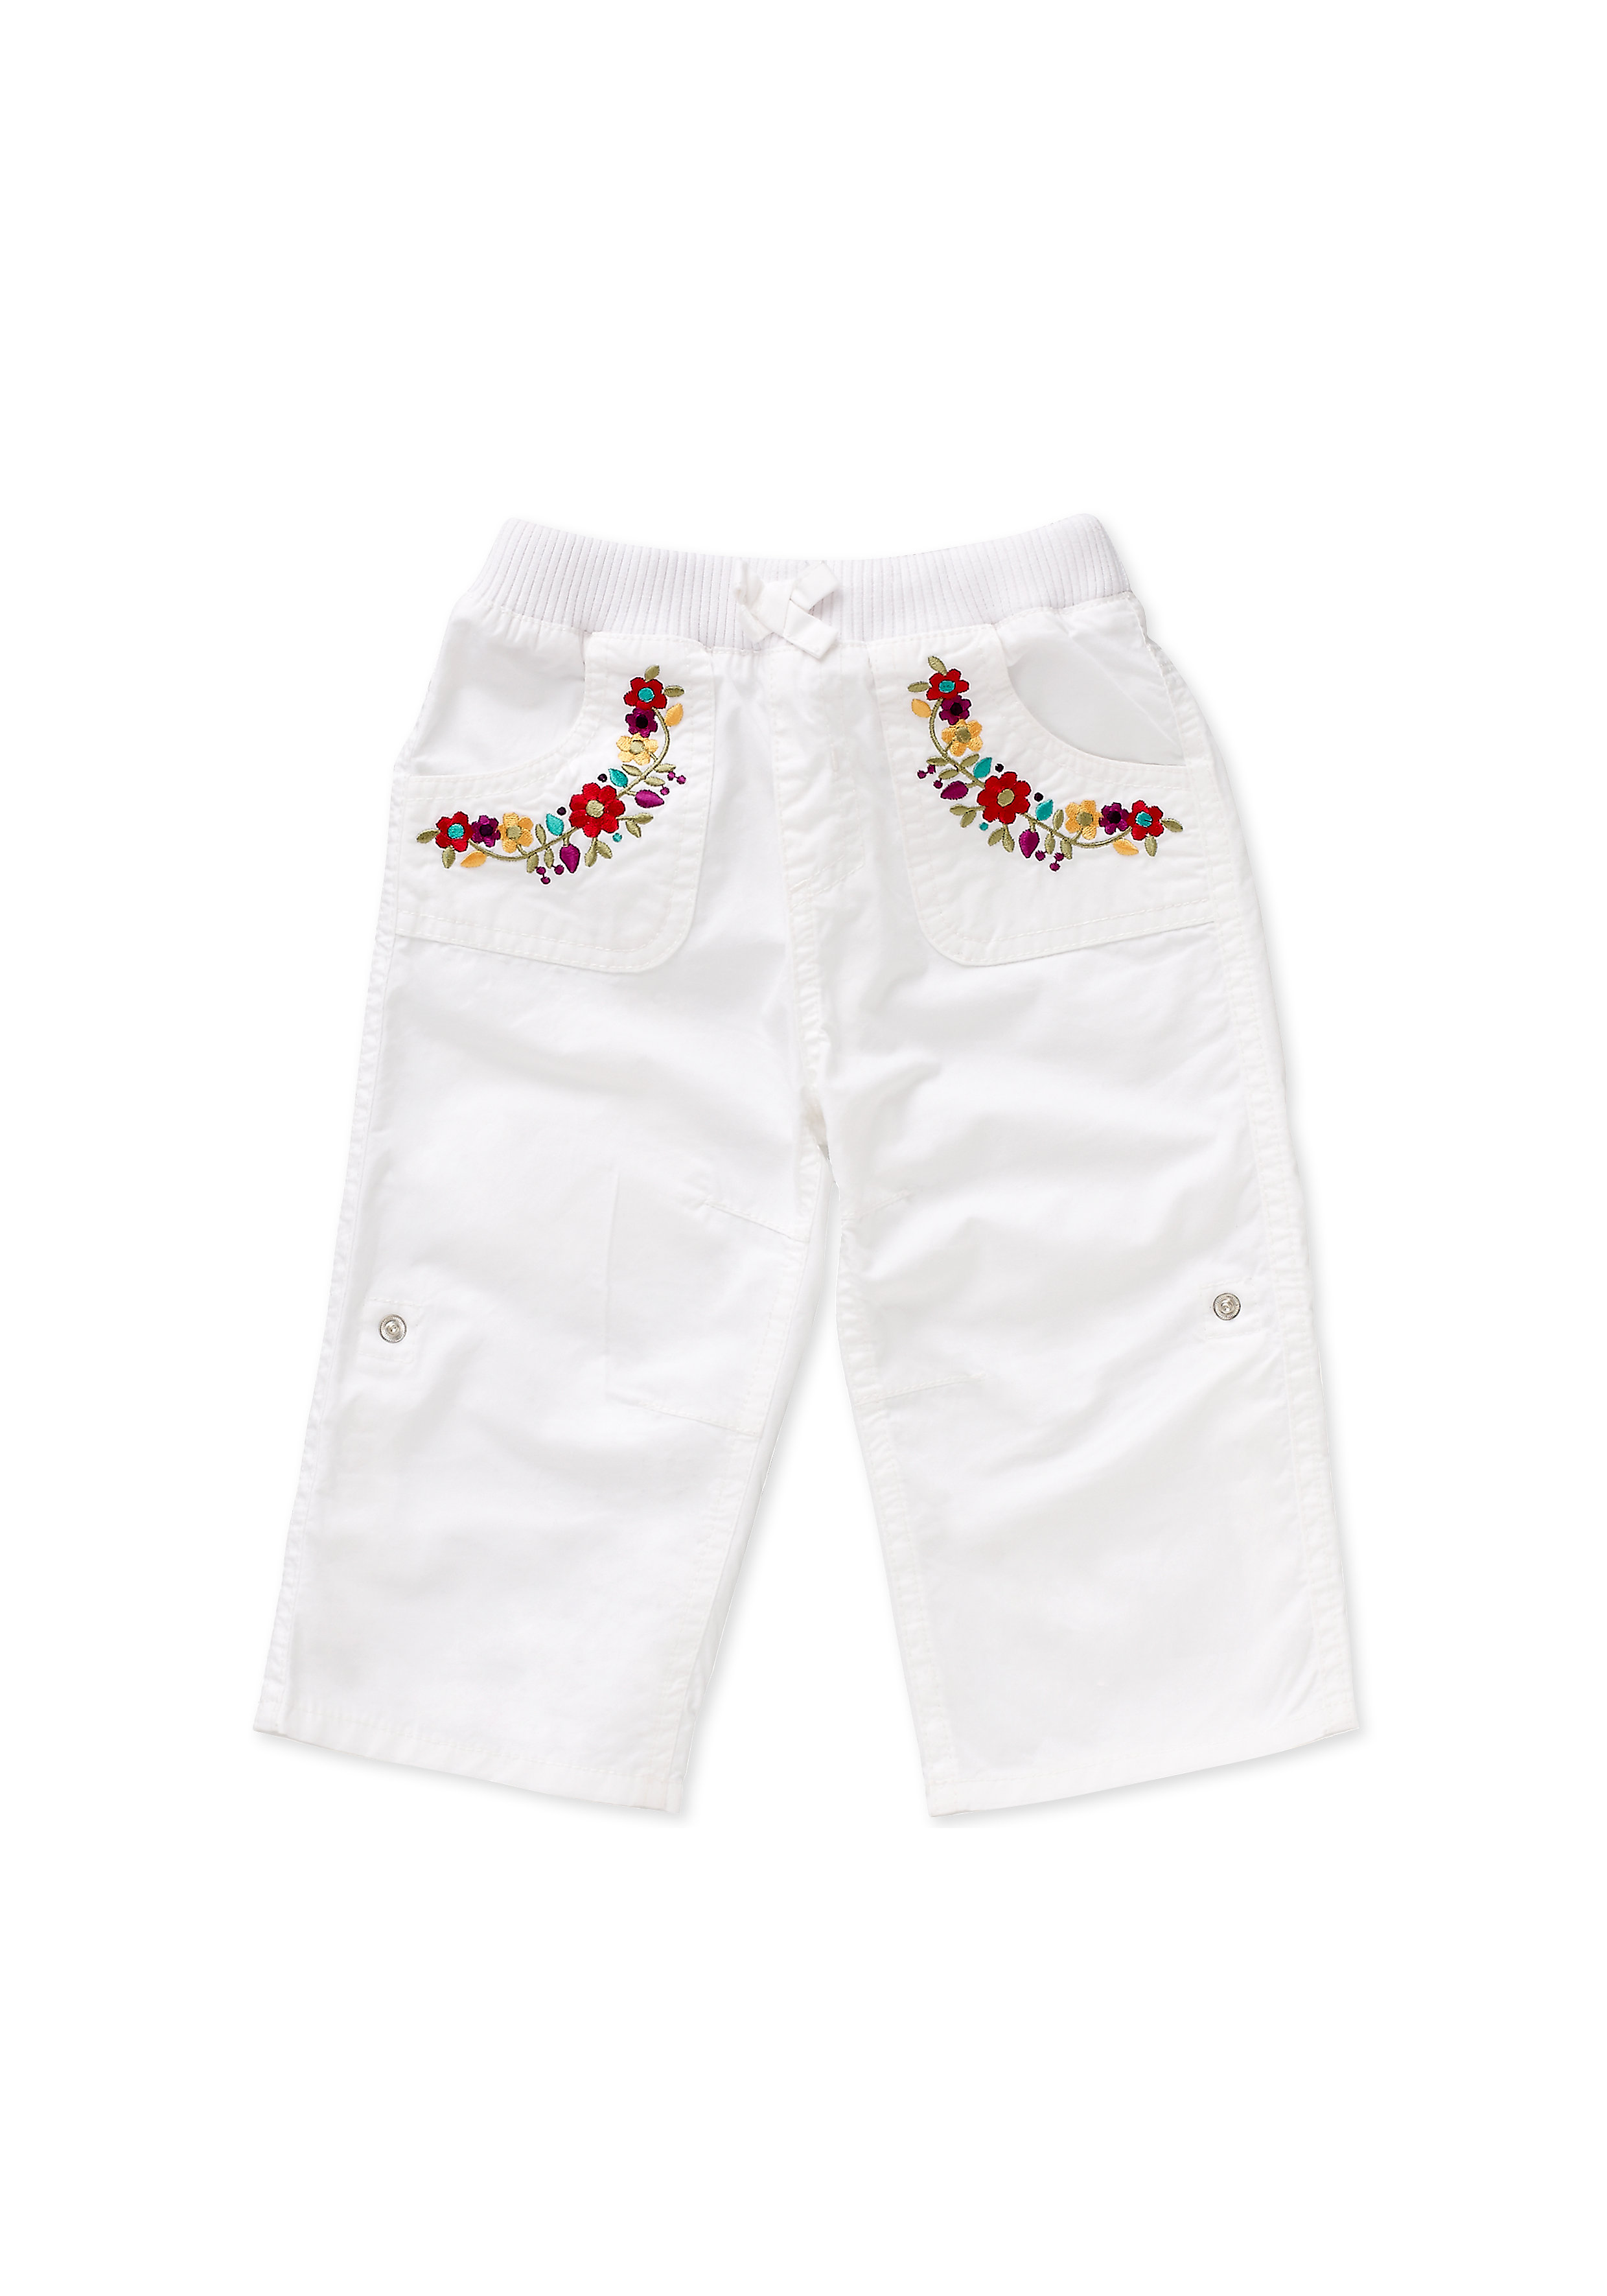 Mothercare   Girls Trousers Floral Embroidery - White